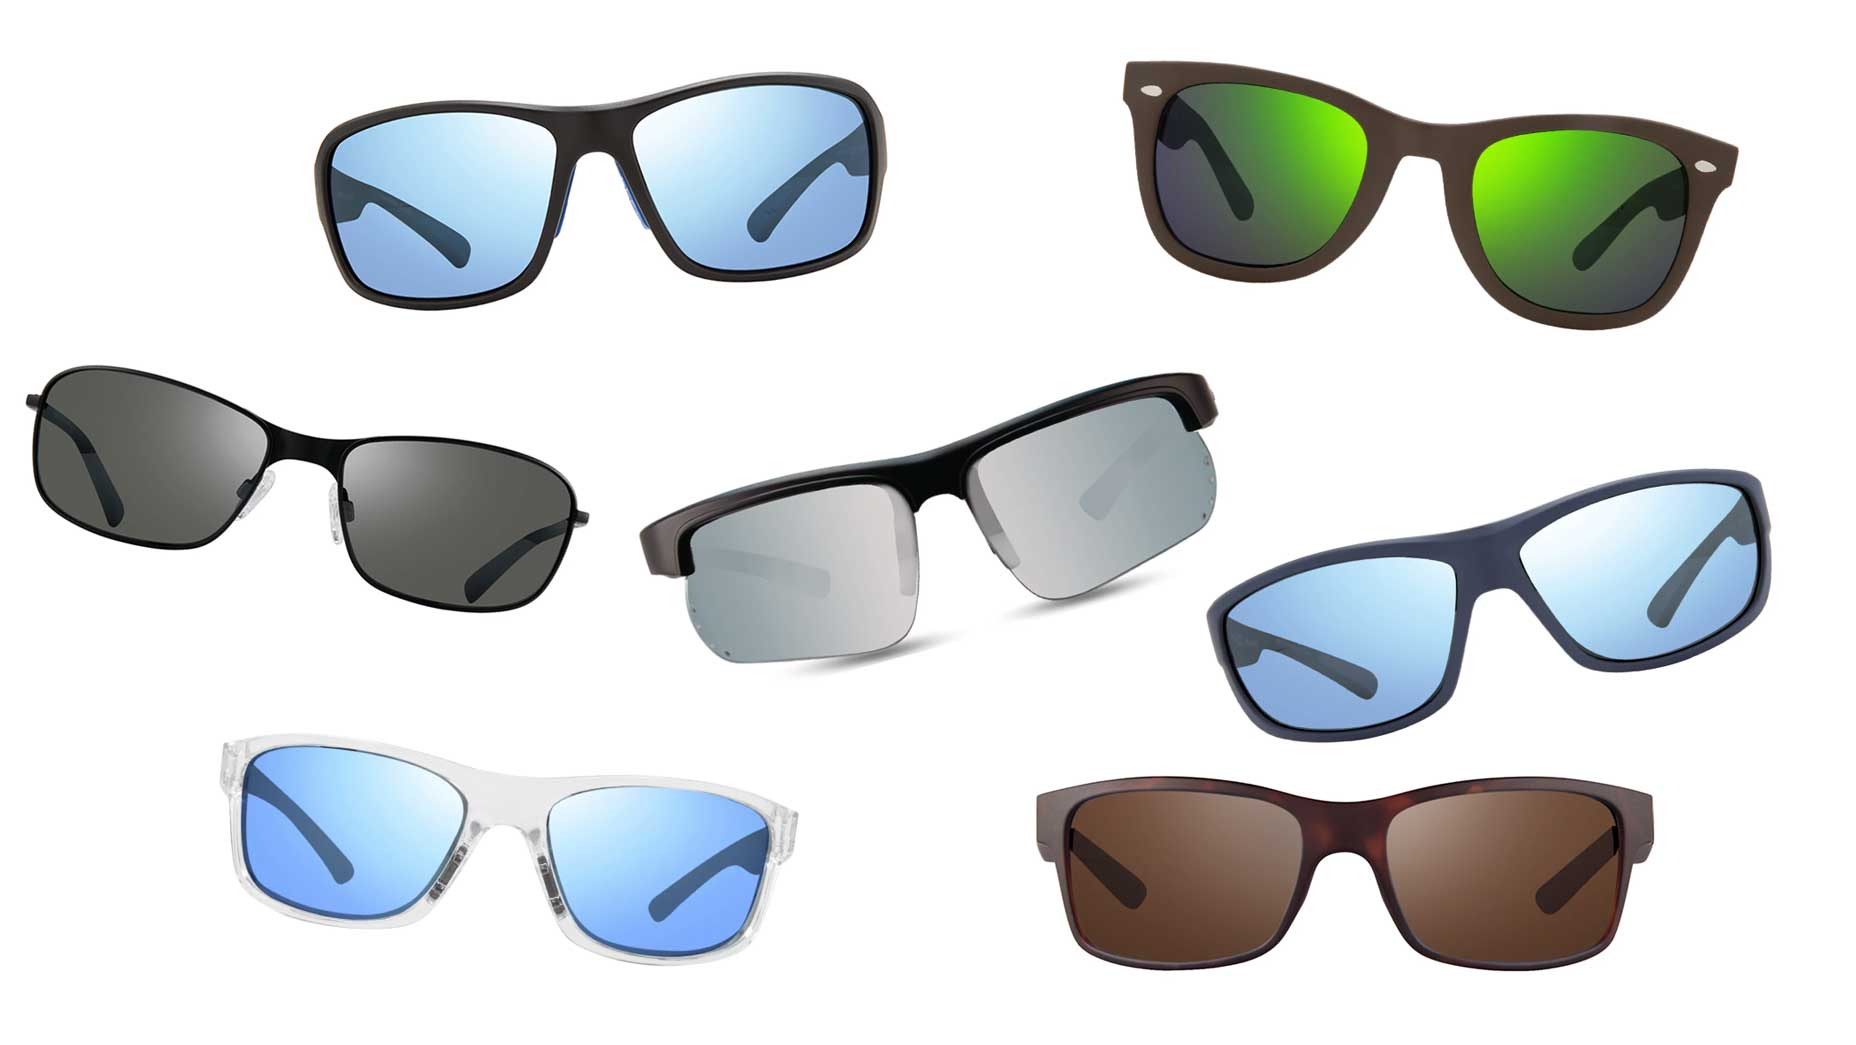 Sale Alert: These great golf sunglasses are 25% off right now